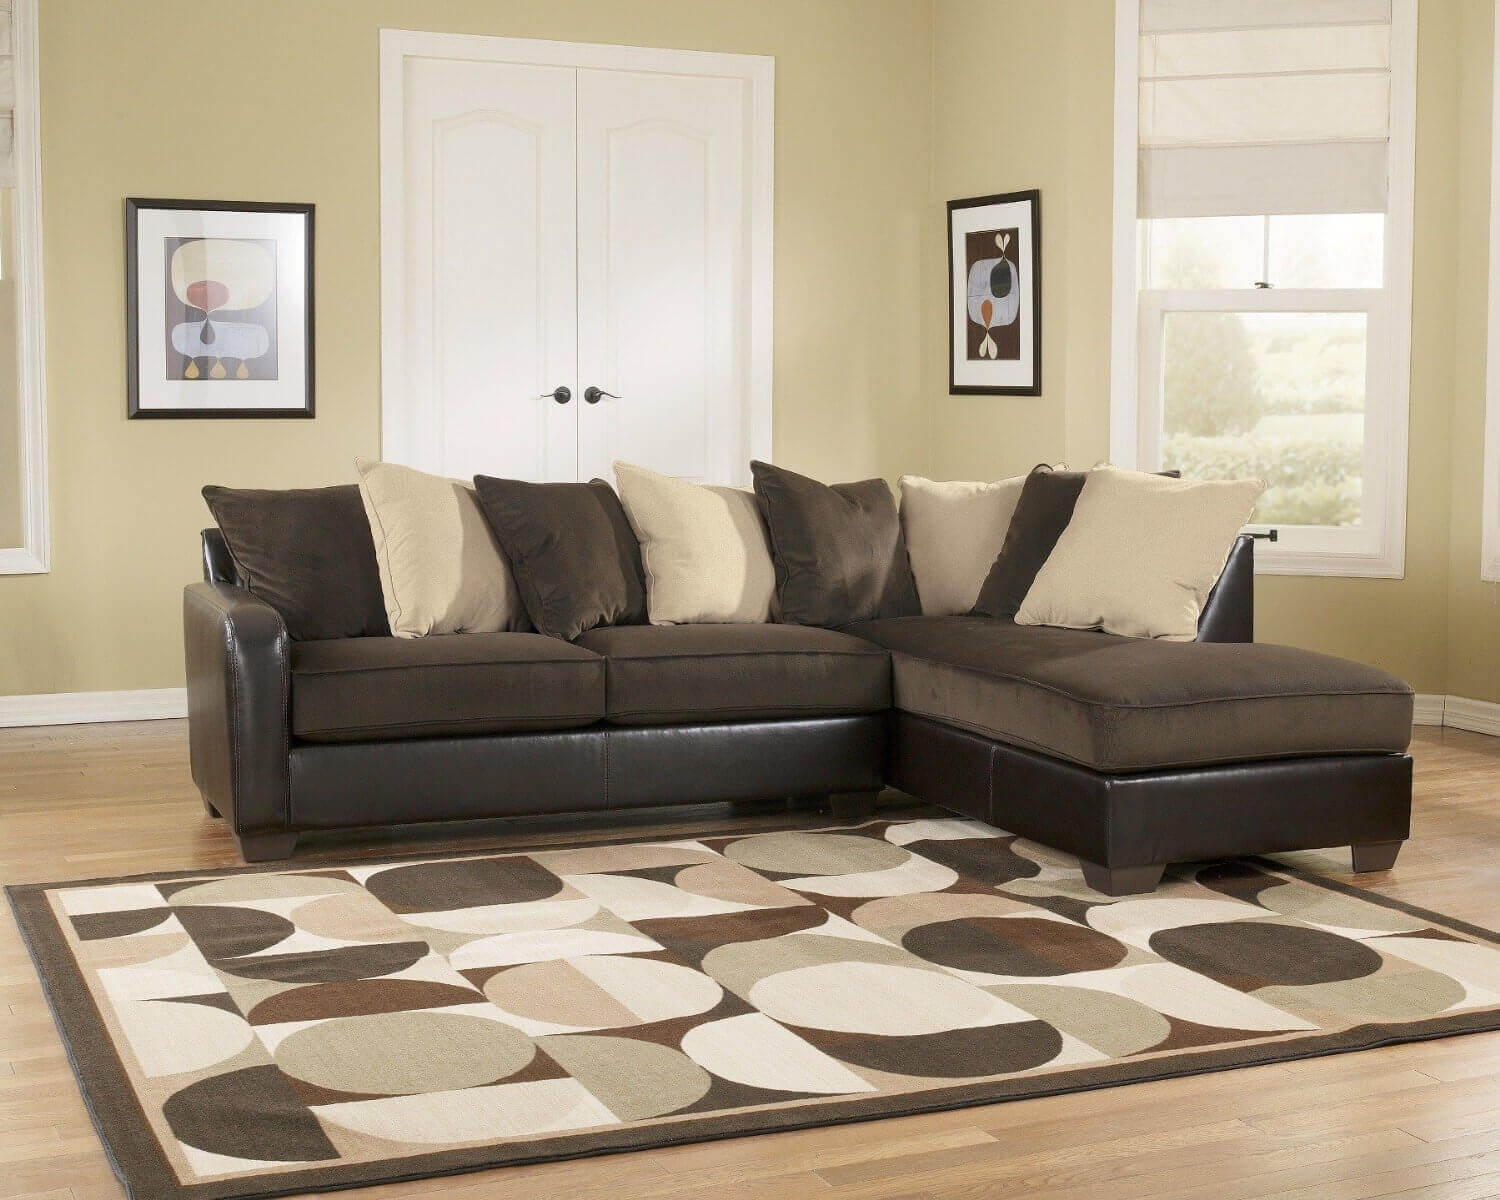 100 Beautiful Sectional Sofas Under 1000 With Regard To Durable Sectional Sofa (#1 of 12)